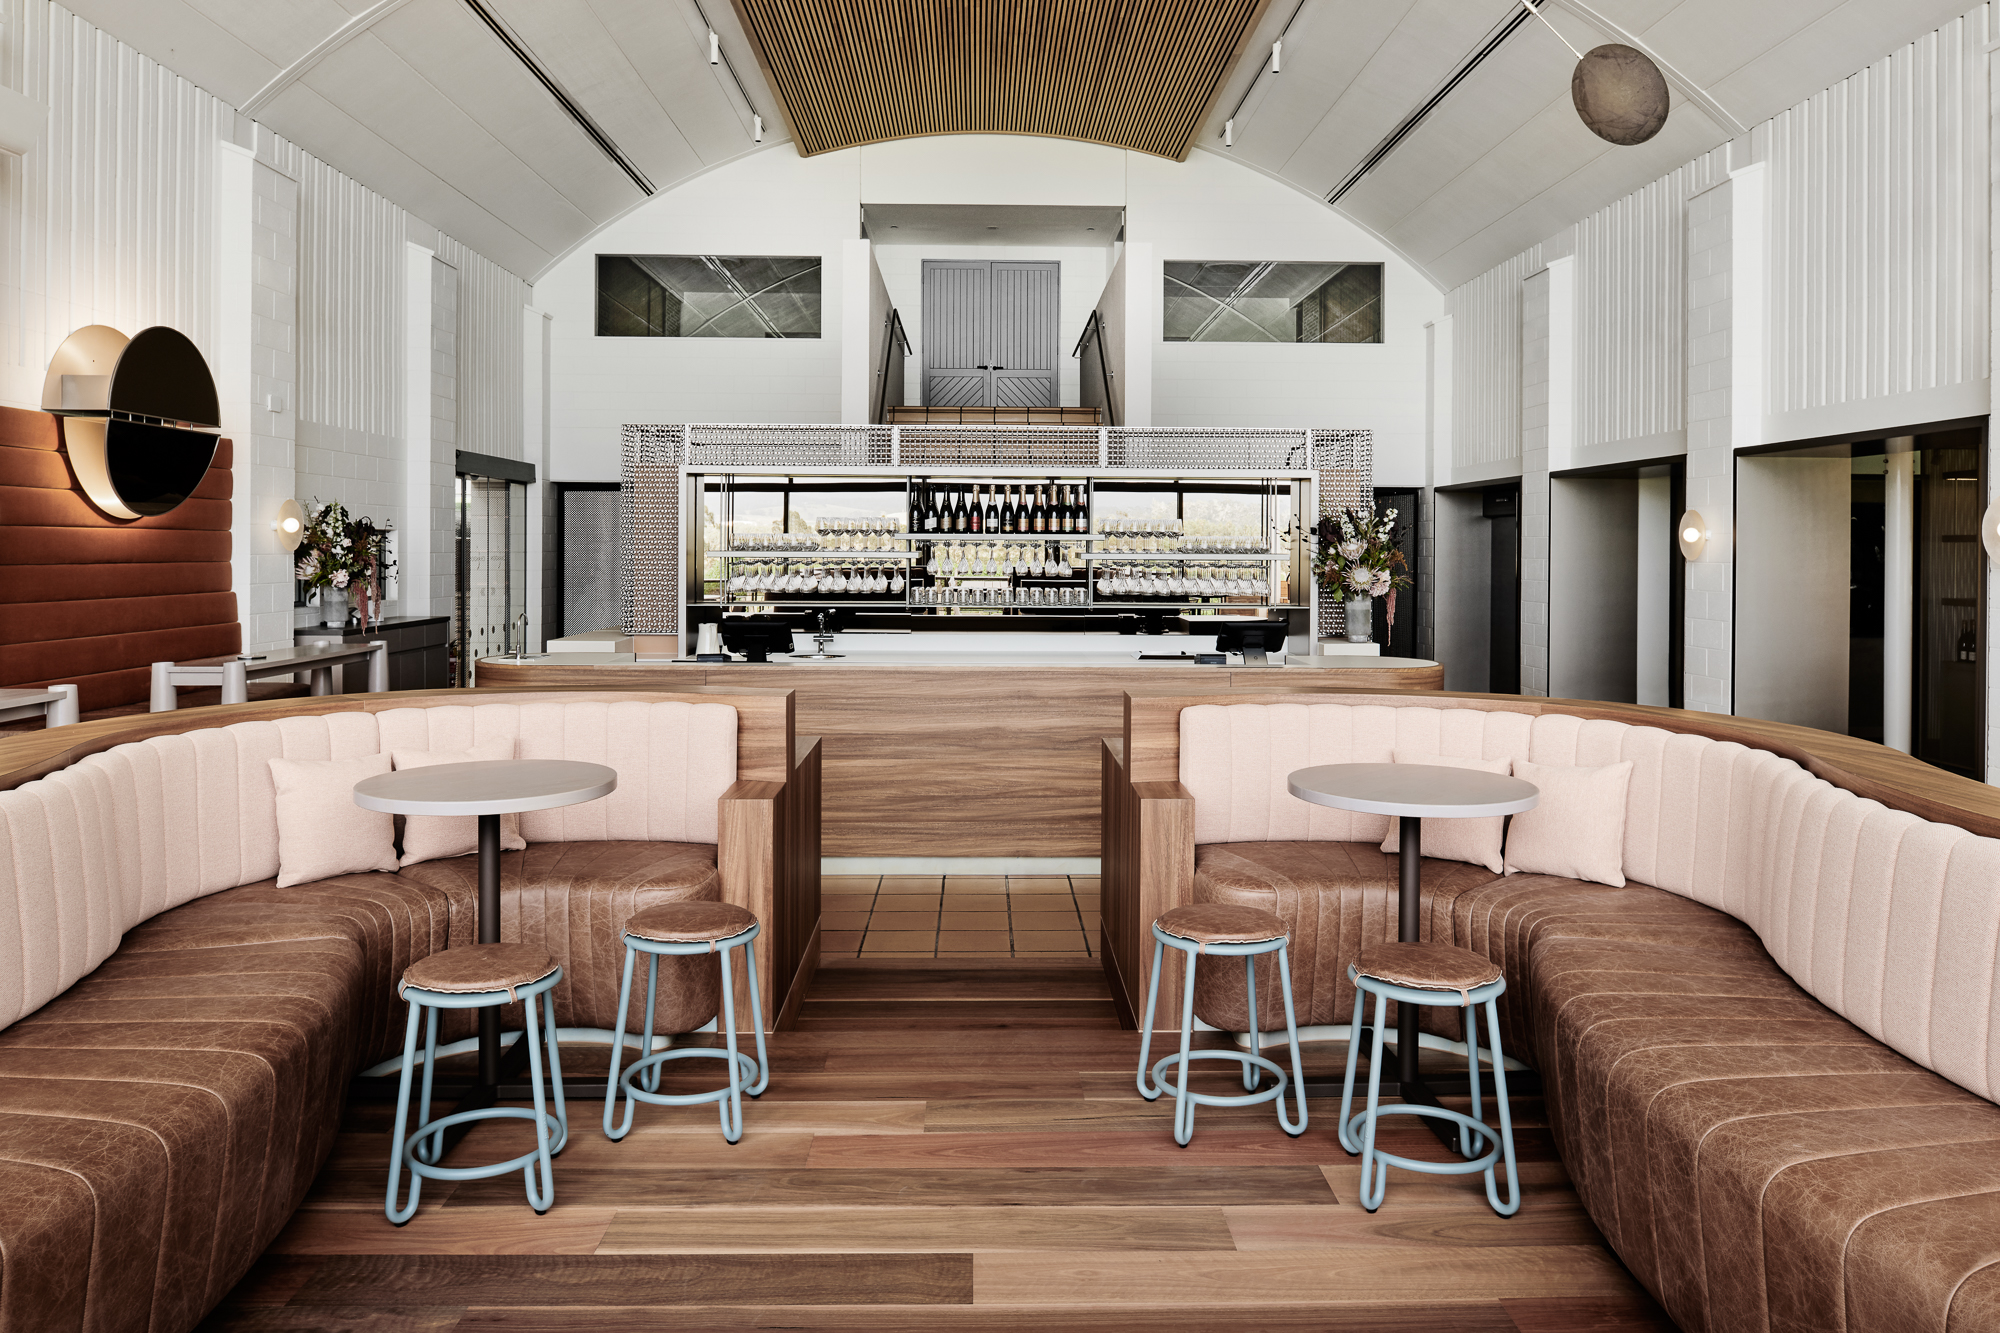 Gallery Of Chandon Australia By Foolscap Studio Local Australian Design And Interiors Yarra Valley, Vic Image 9